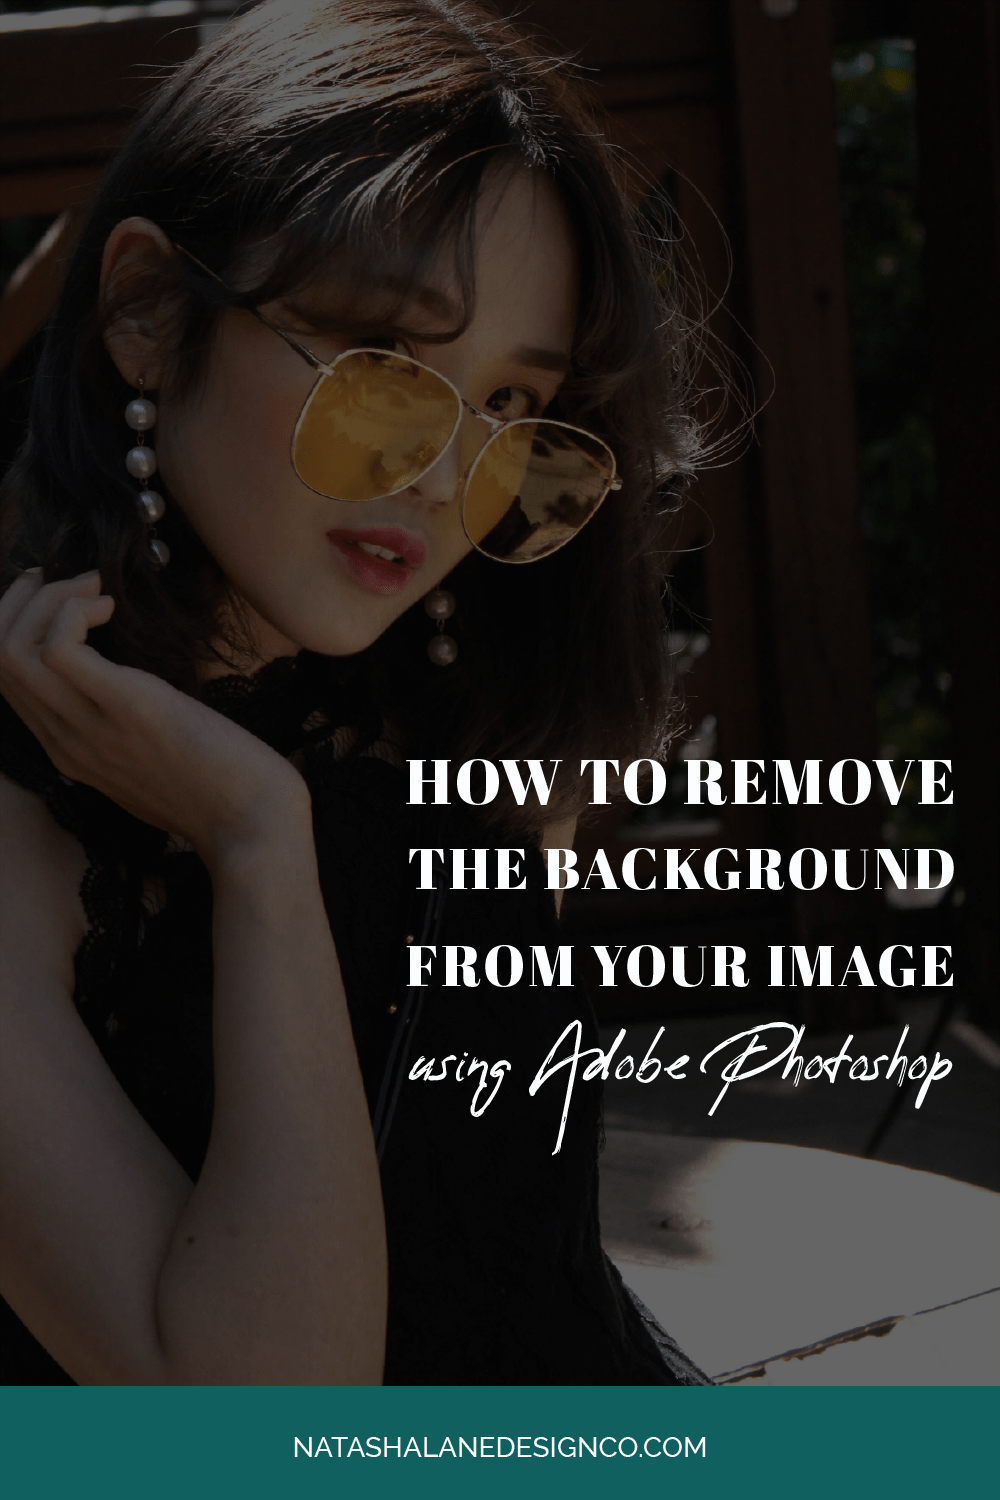 How to remove the background from your image to create YouTube thumbnails using Adobe Photoshop